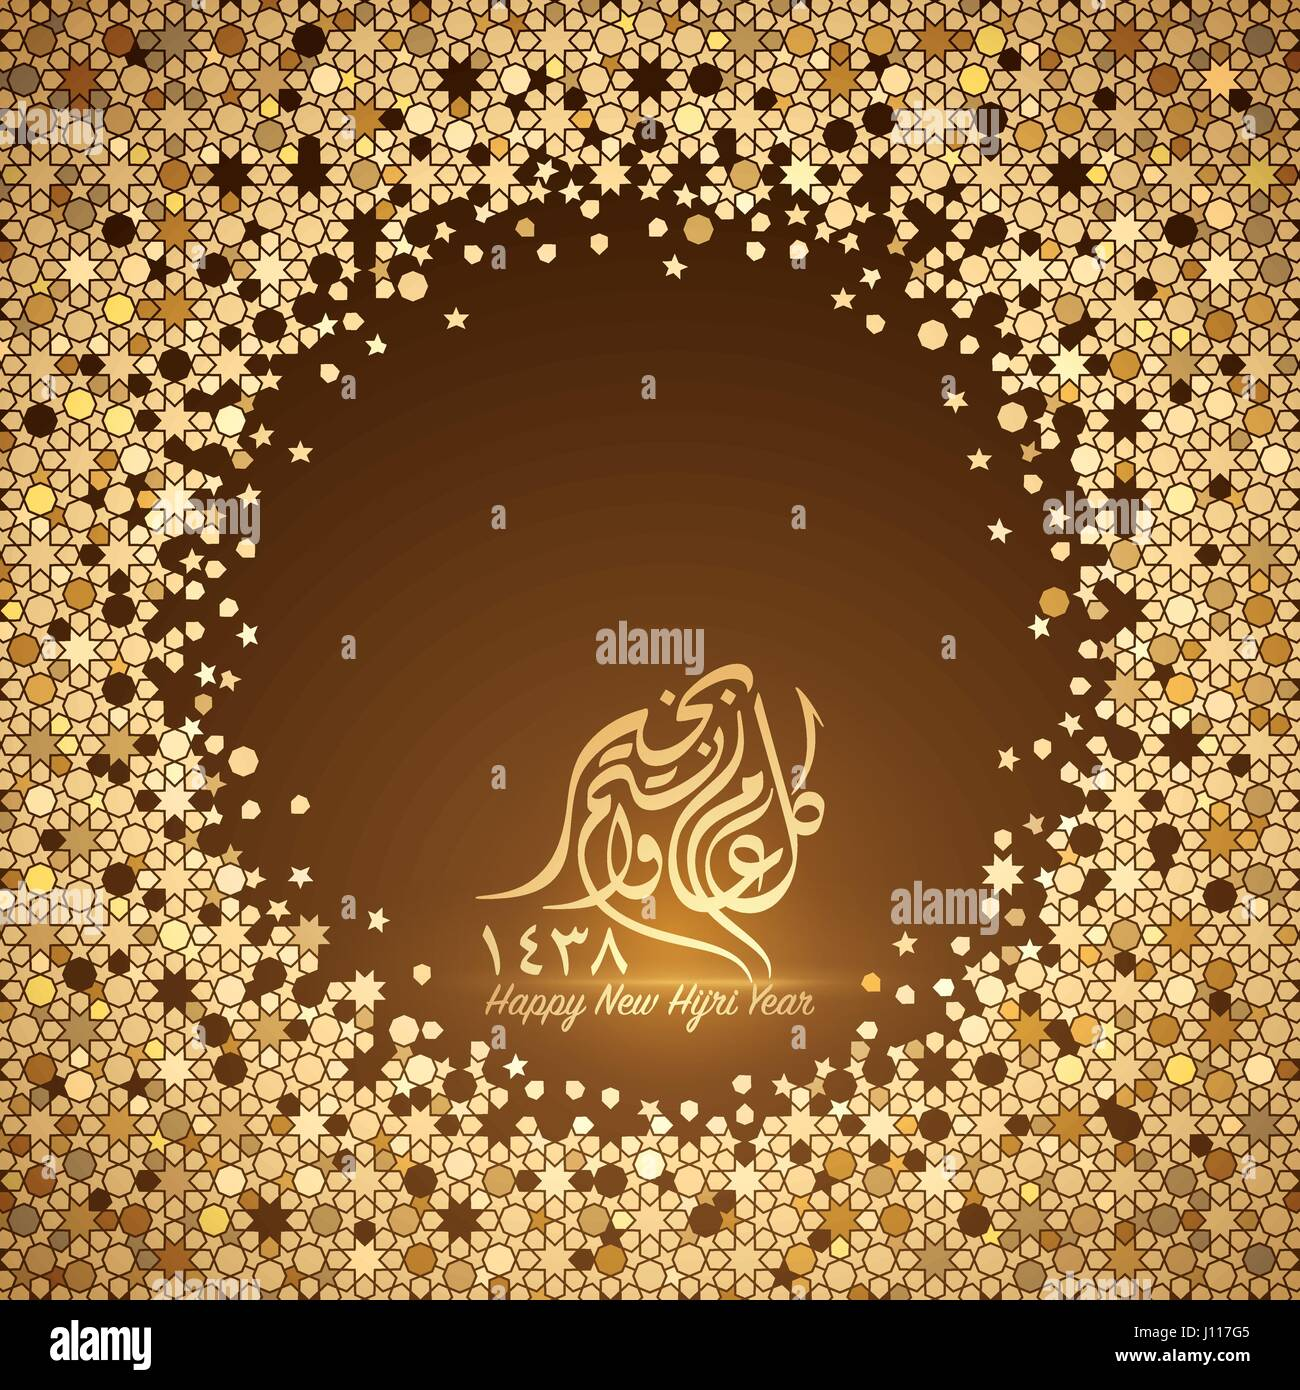 Happy new hijri year 1438 islamic greeting card banner background happy new hijri year 1438 islamic greeting card banner background m4hsunfo